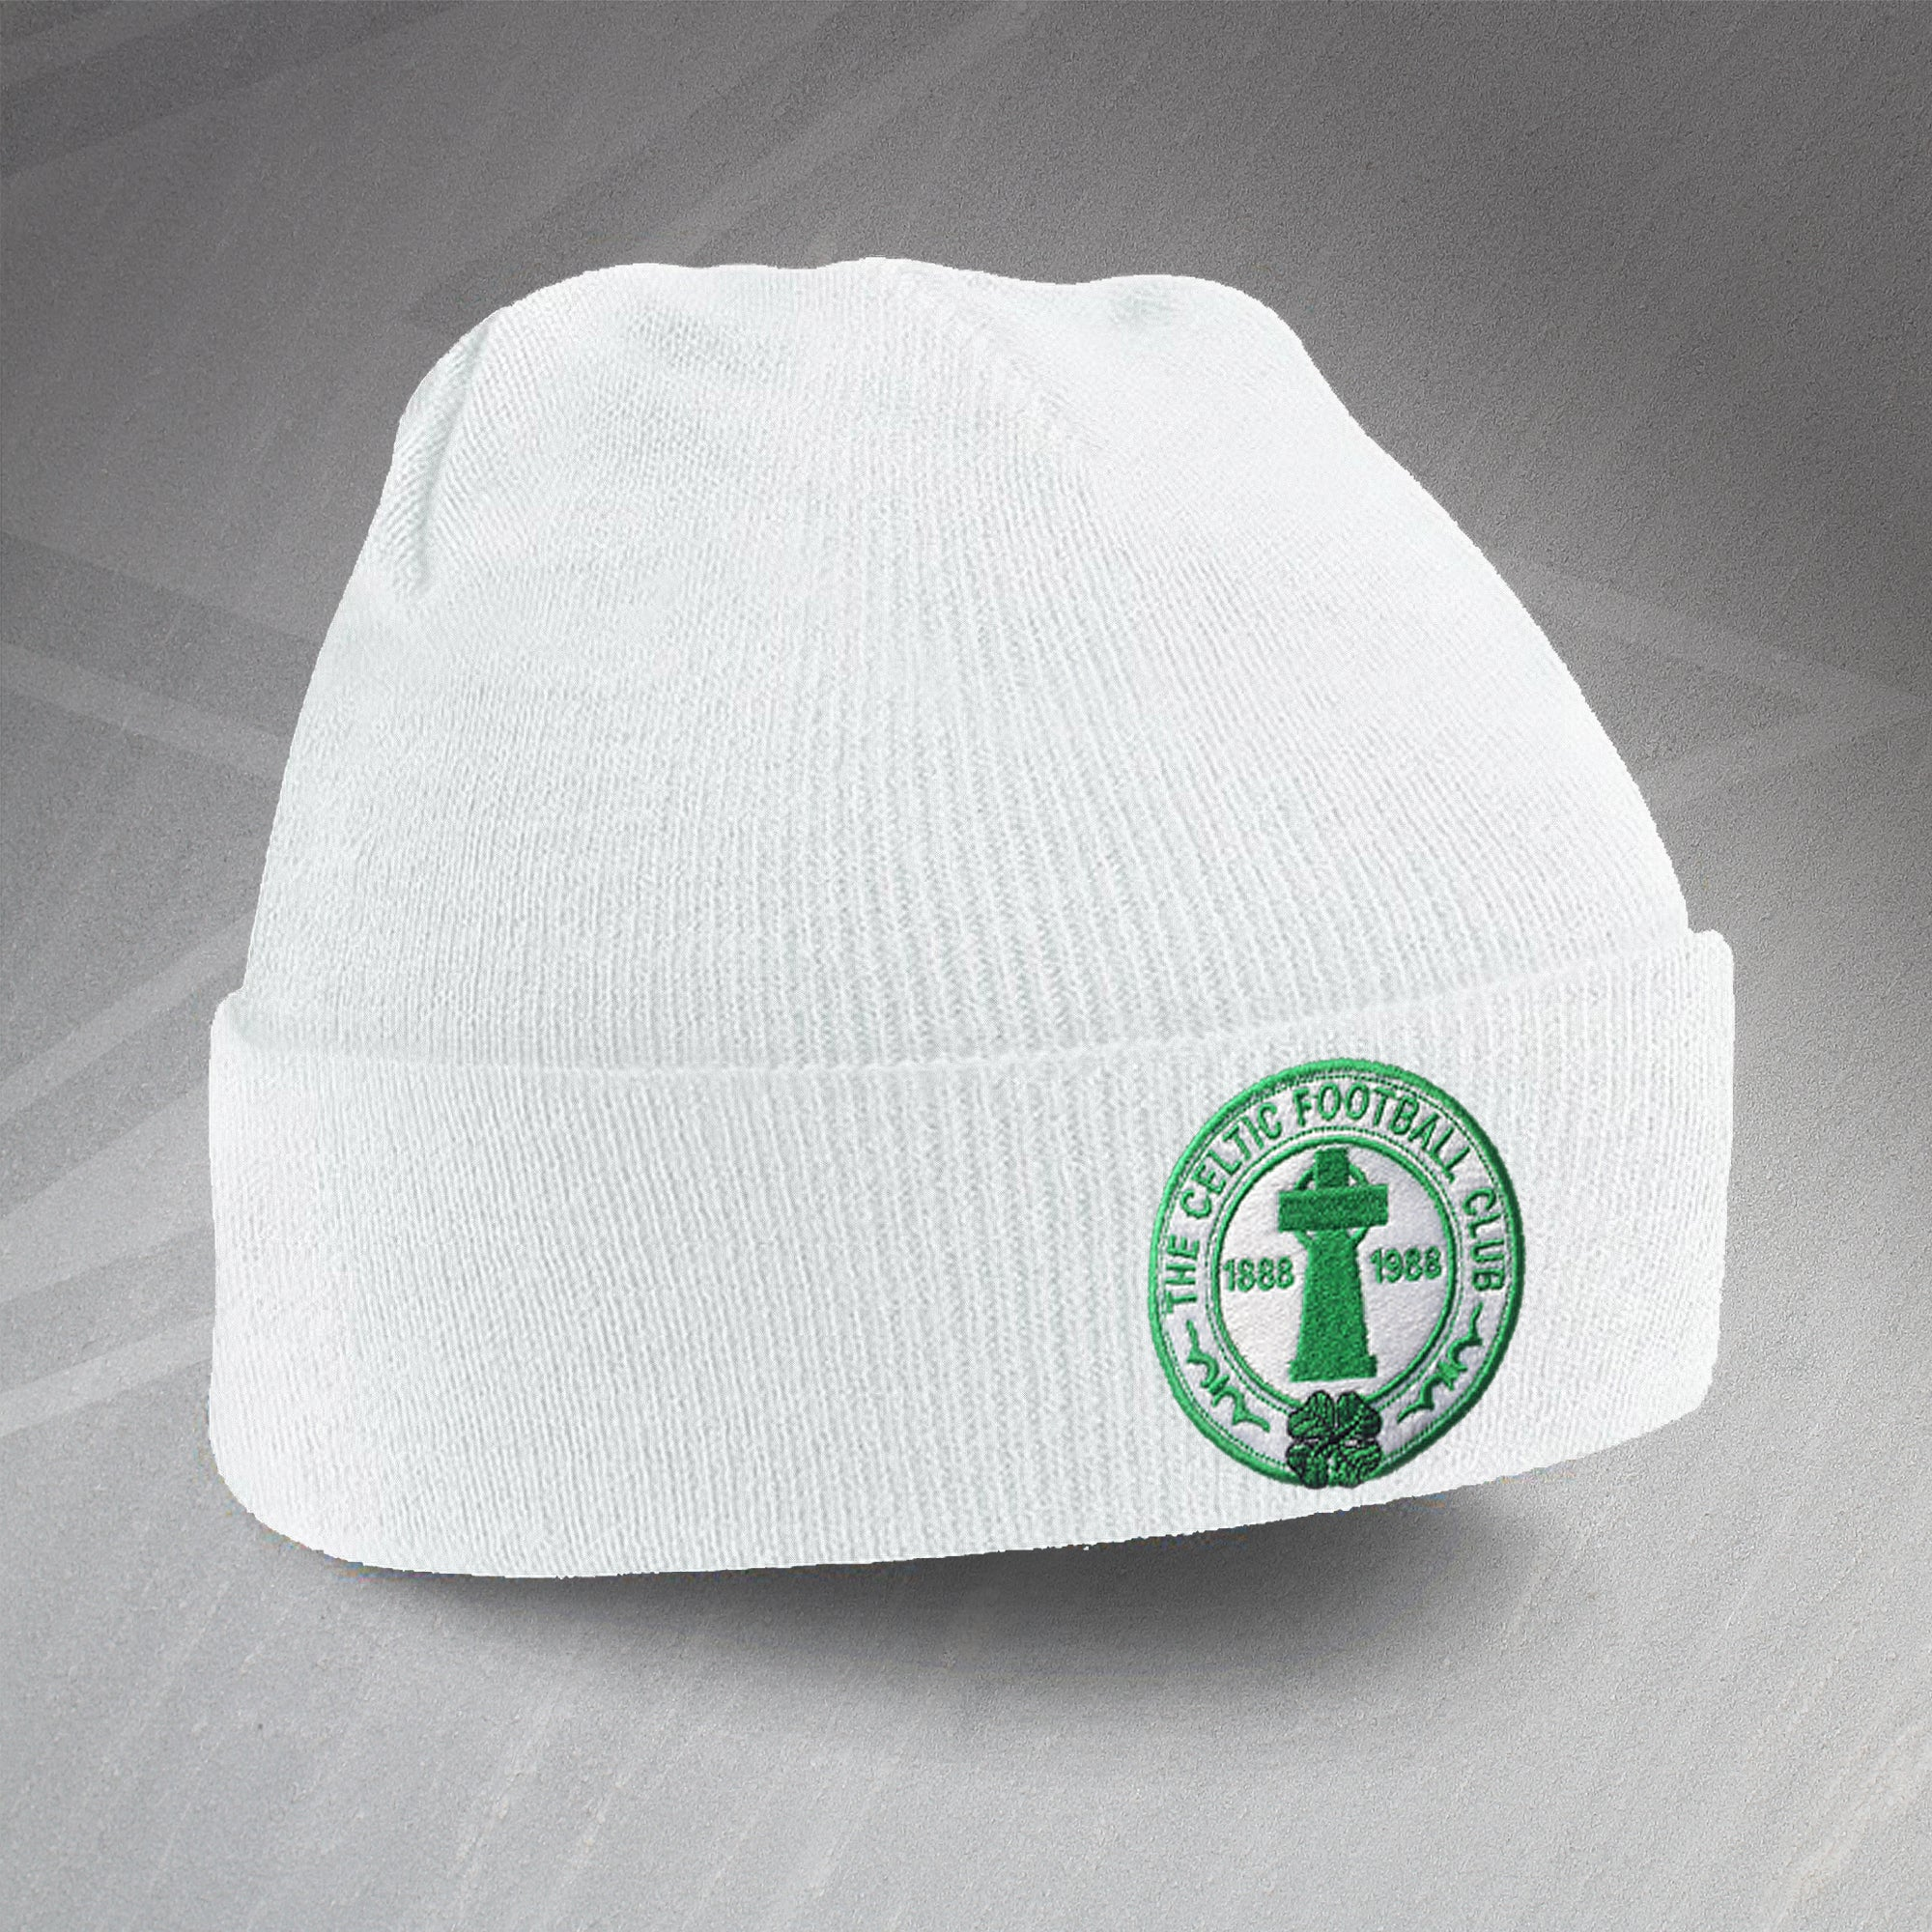 7a91dea9c3119 All Images and Content Copyright © Sloganite.com · Retro Celtic Centenary  Beanie Hat with Embroidered Badge